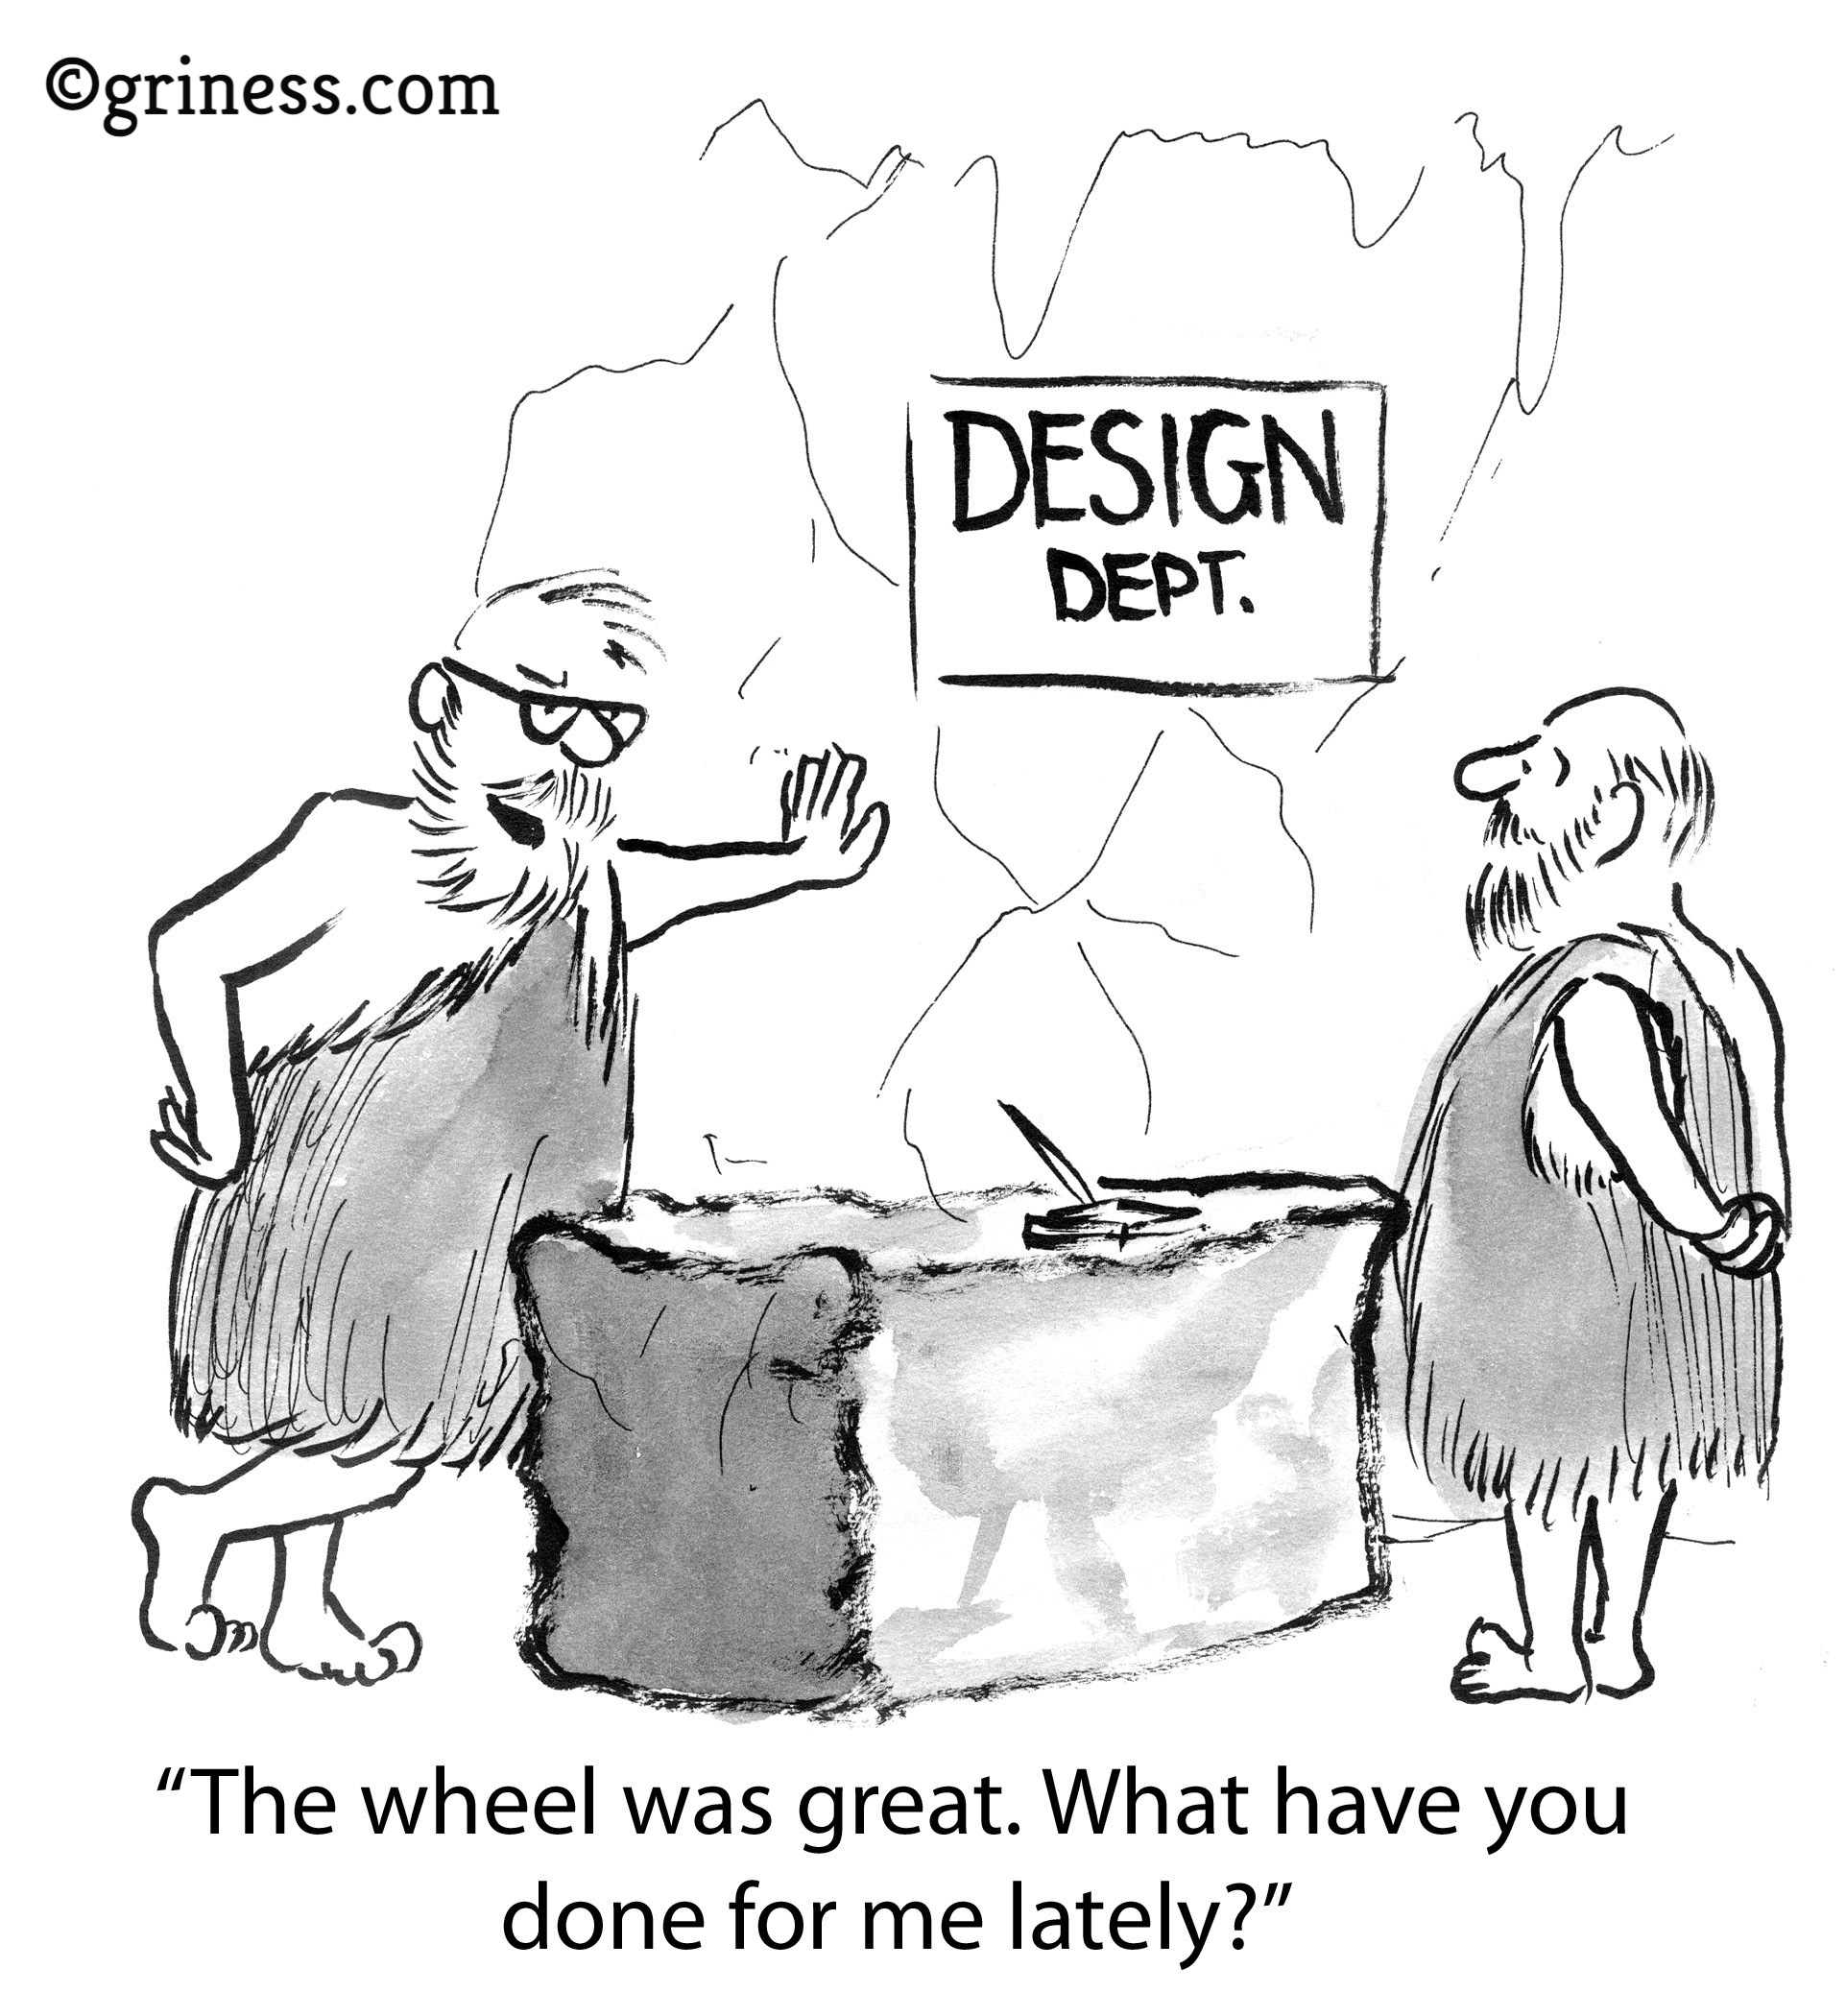 the wheel was great what have you done for me lately design thinking innovation griness com free business cartoons